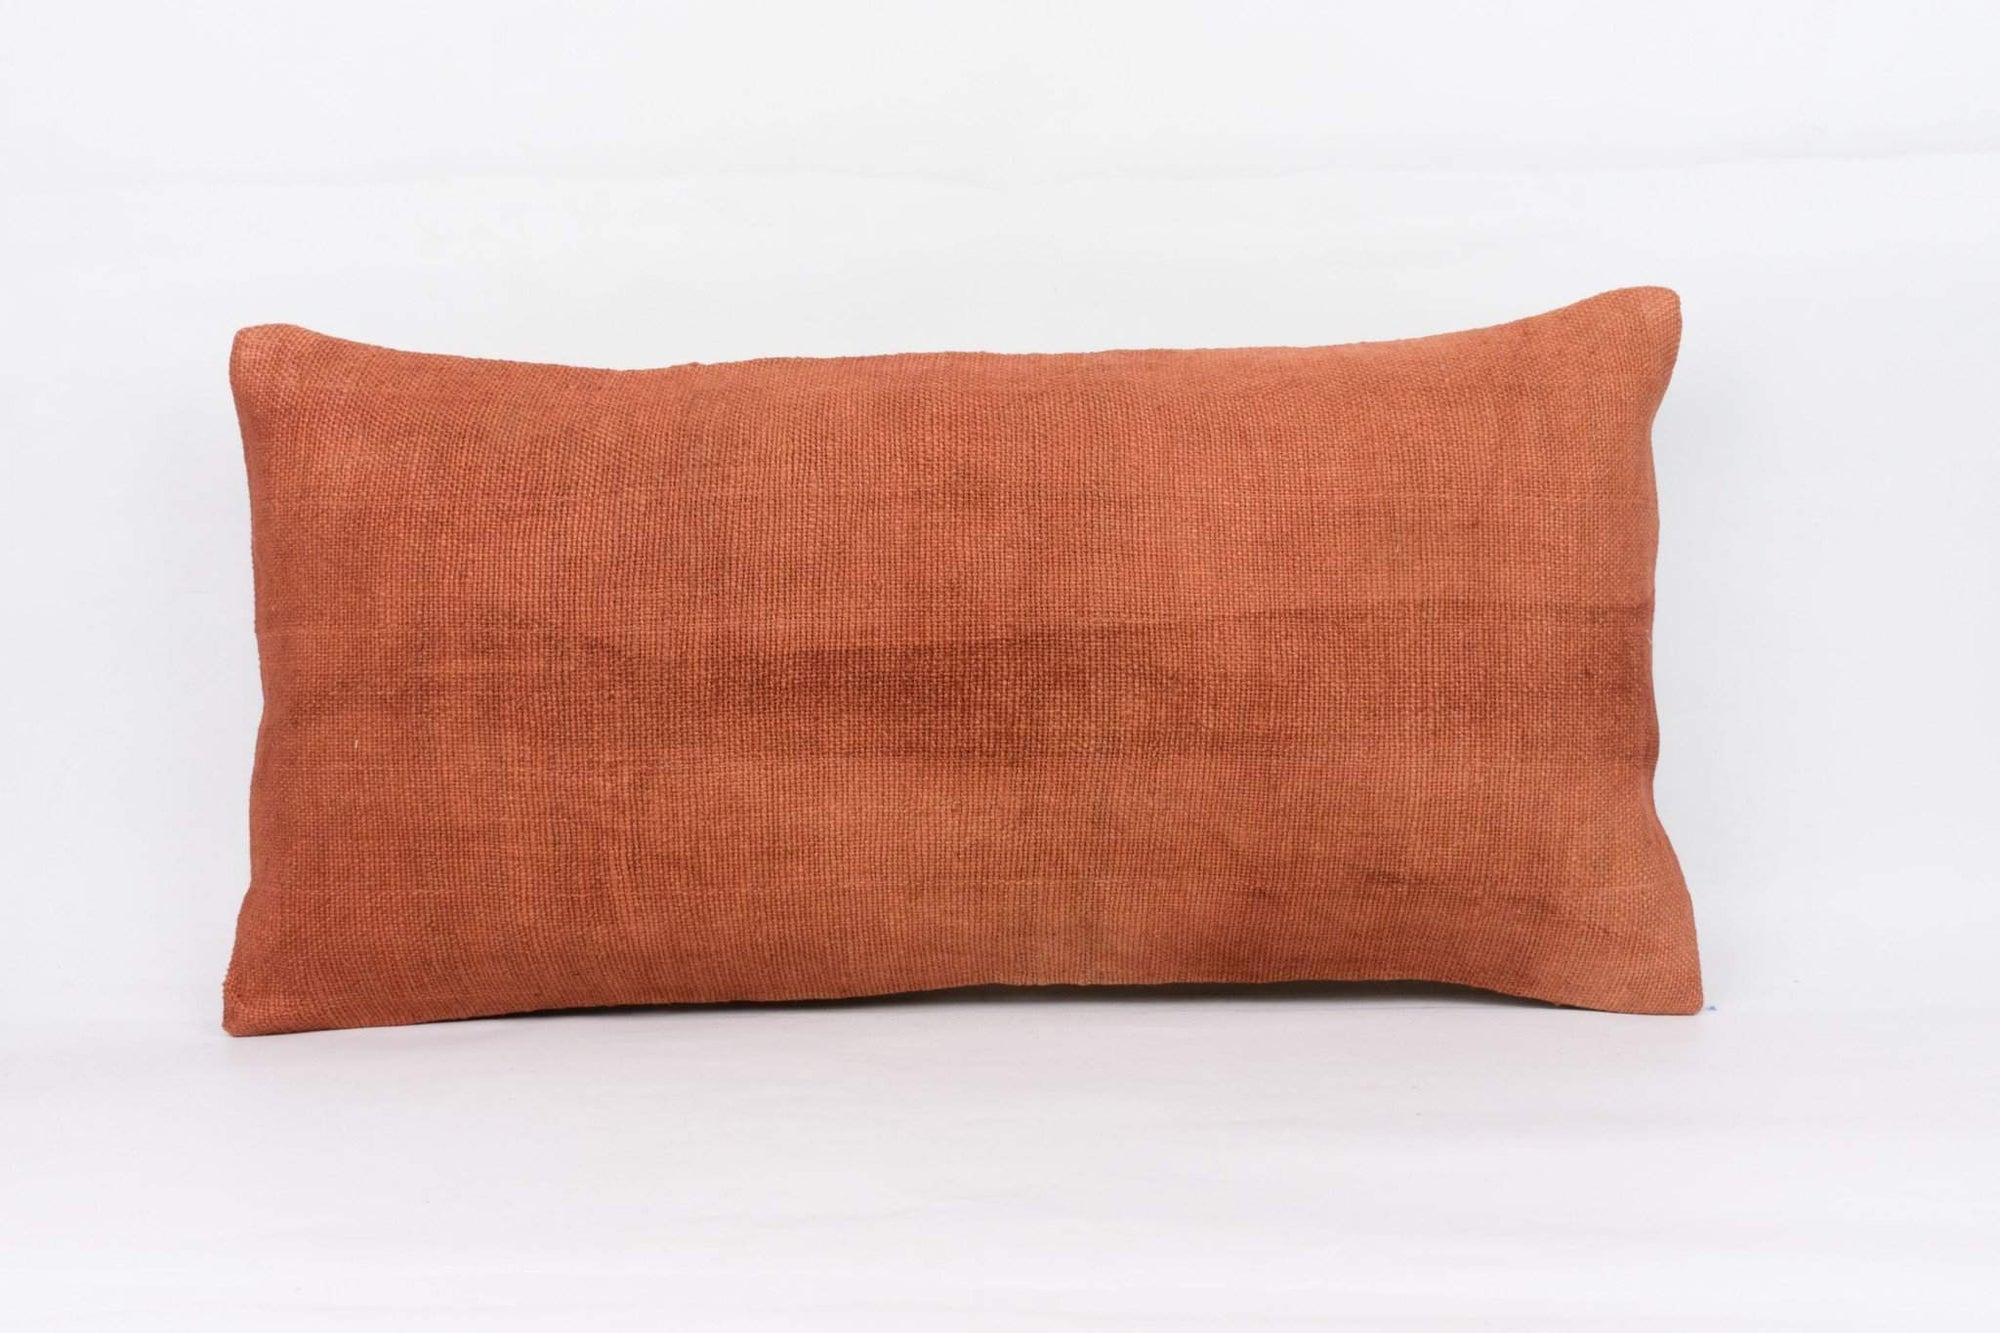 Plain Brown Kilim Pillow Cover 12x24 4189 - kilimpillowstore  - 1